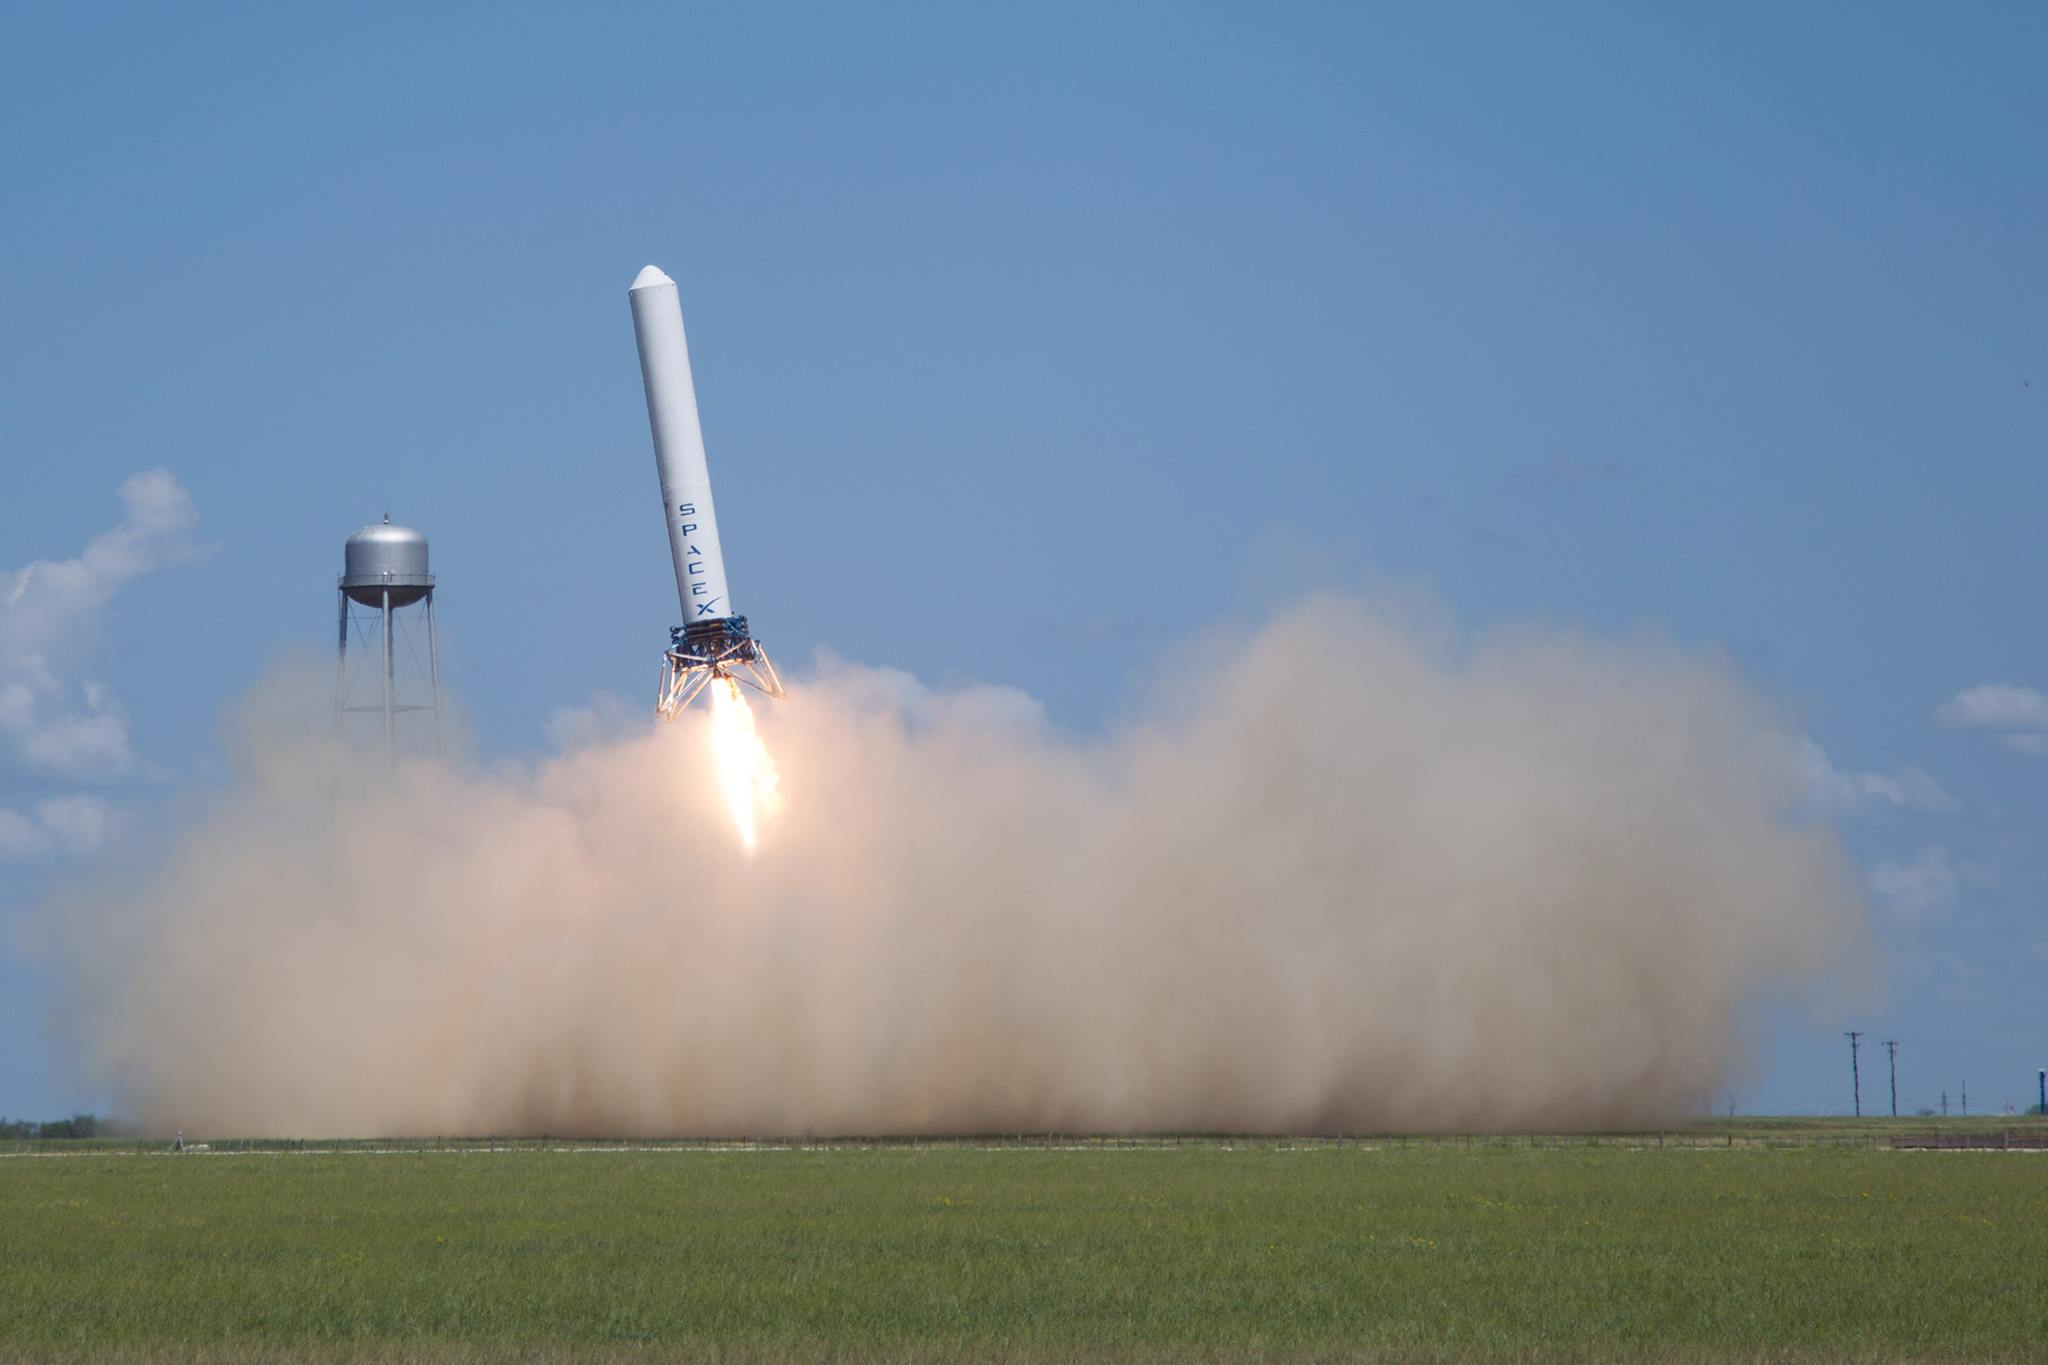 Texas SpaceX Rockets - Pics about space